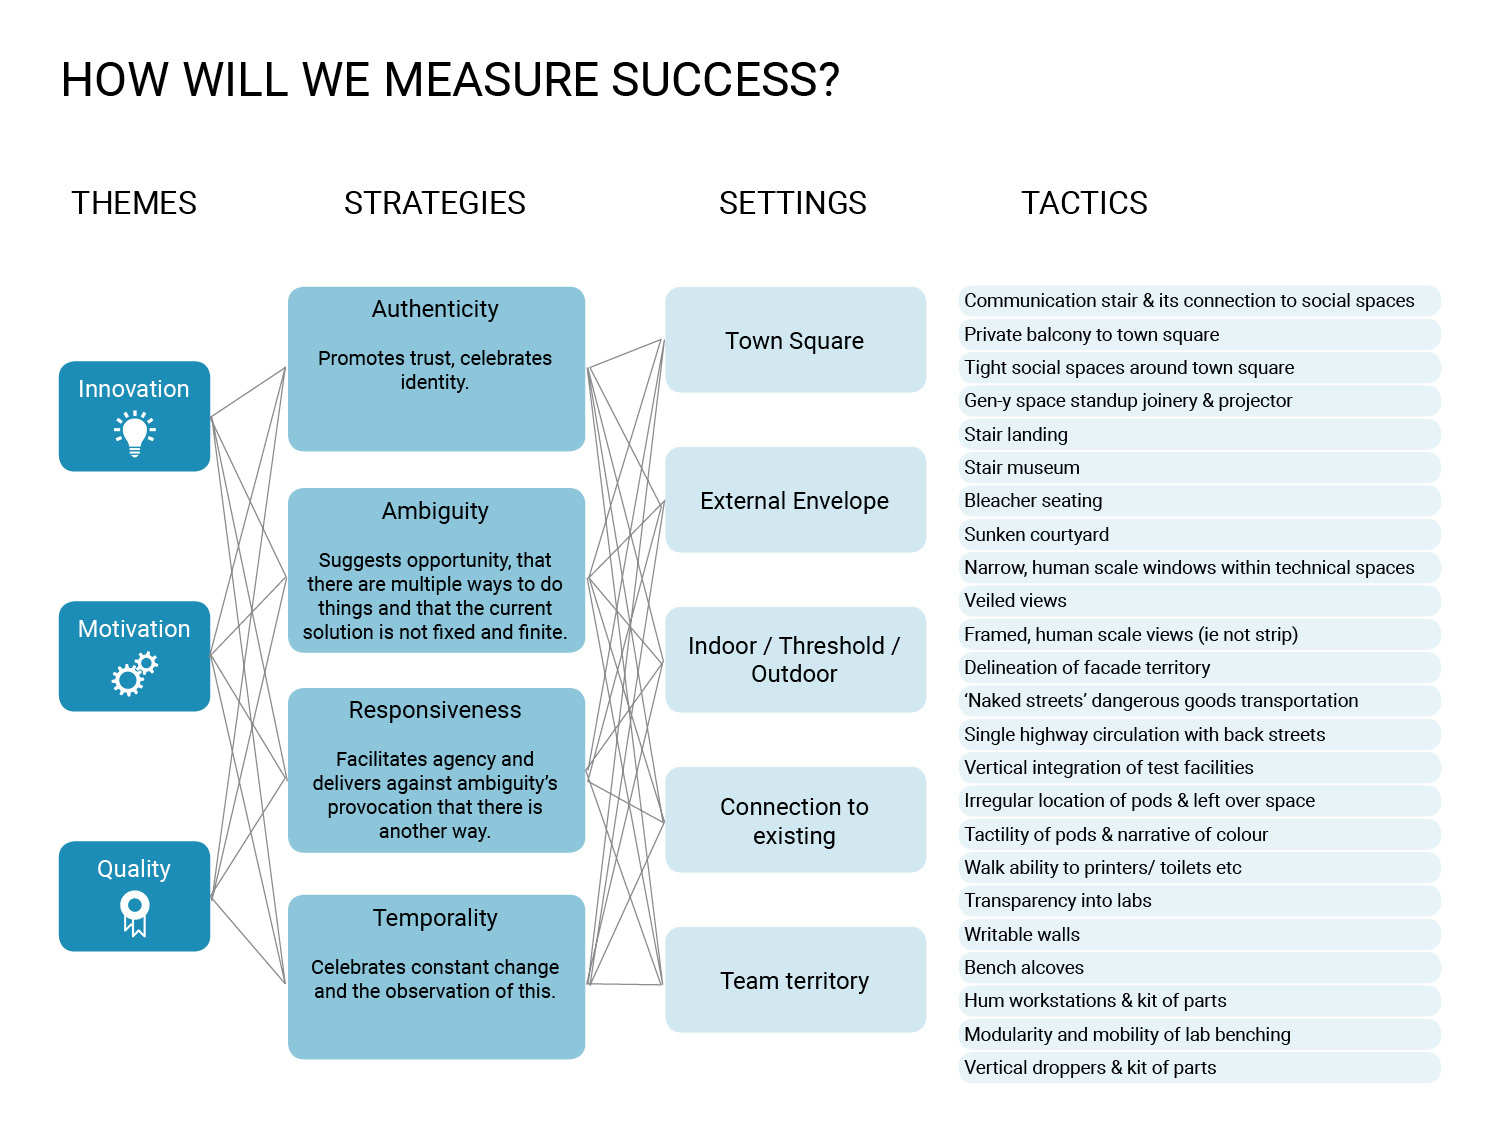 Public_Realm_Lab_SWAE_Agilent_How_Will_We_Measure_Success.jpg